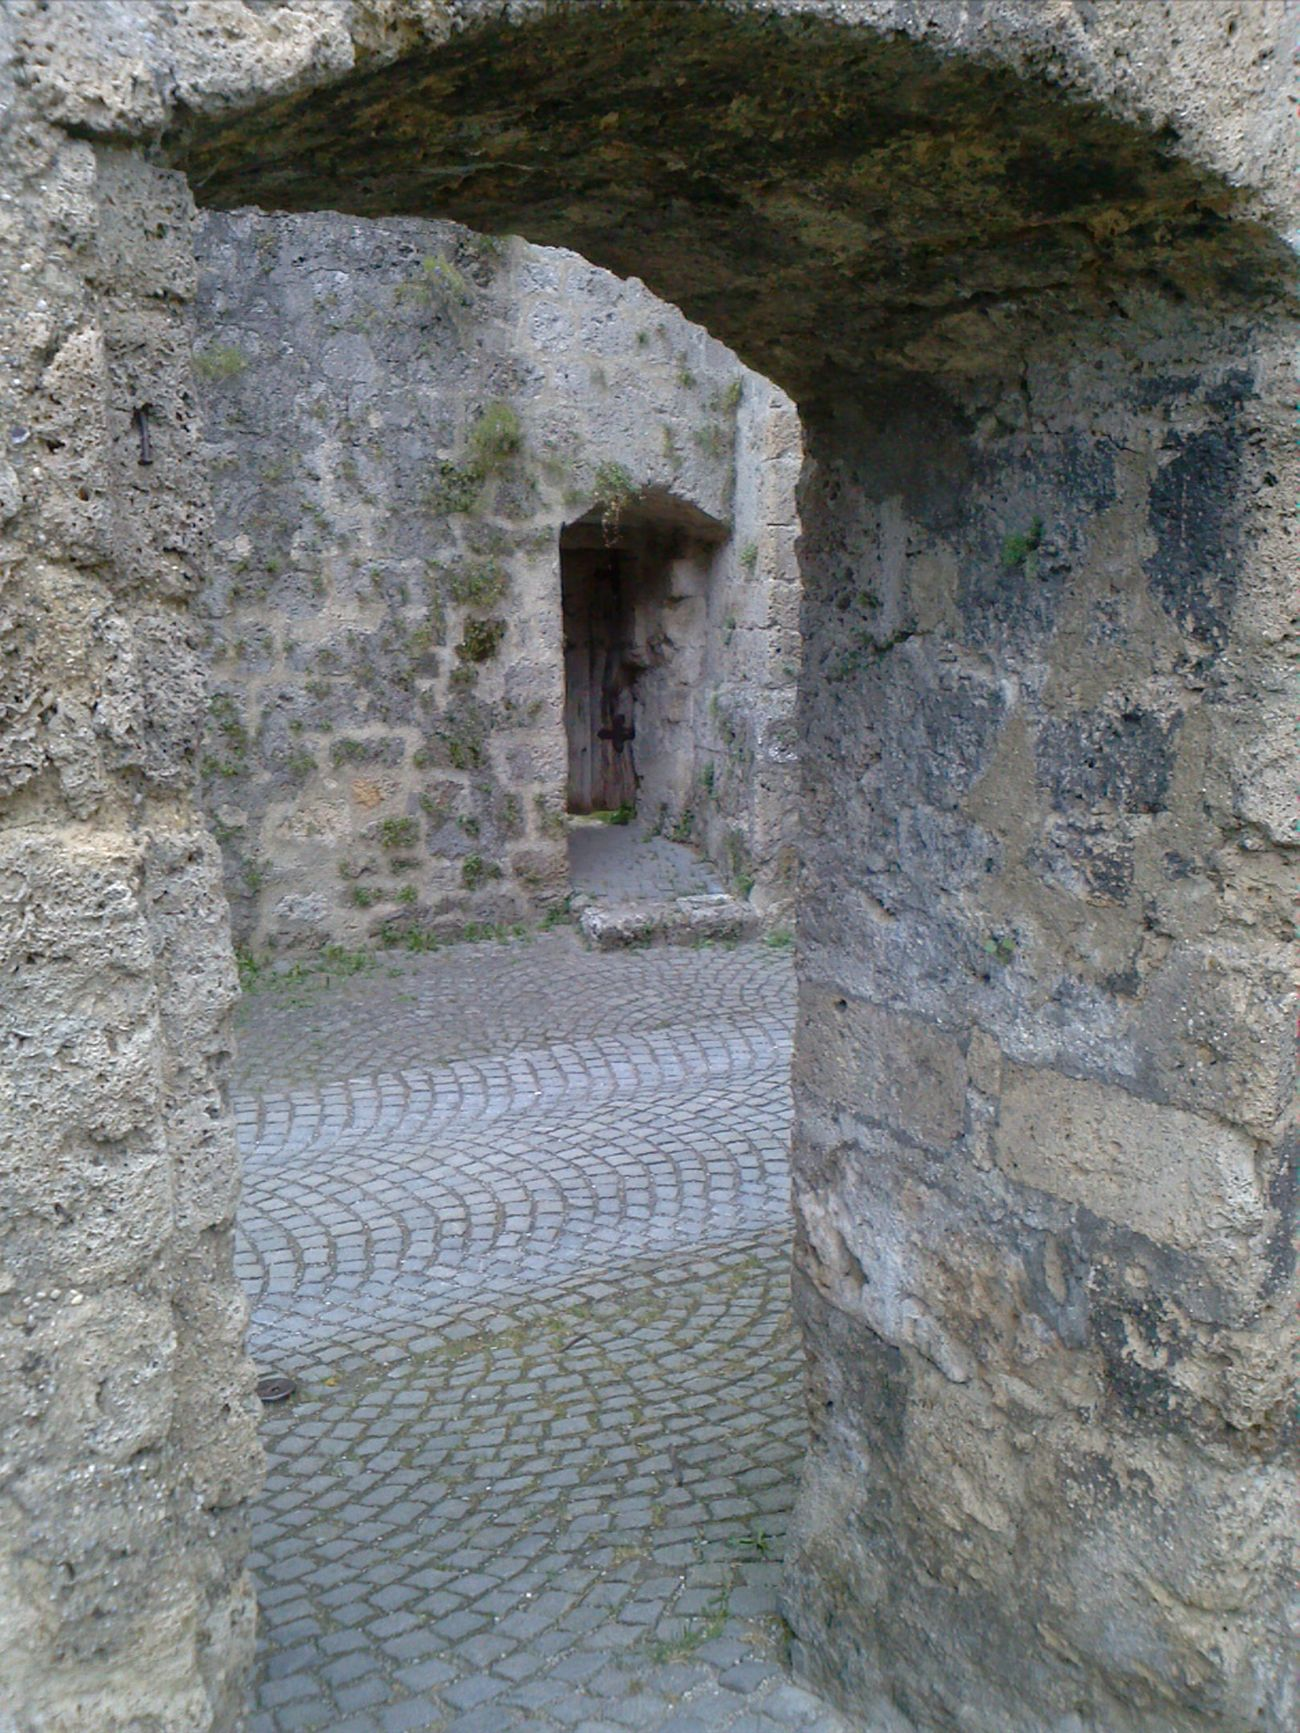 ... View from an archway to a small door at an exremely old castle in Tittmoning, Bavaria, Germany